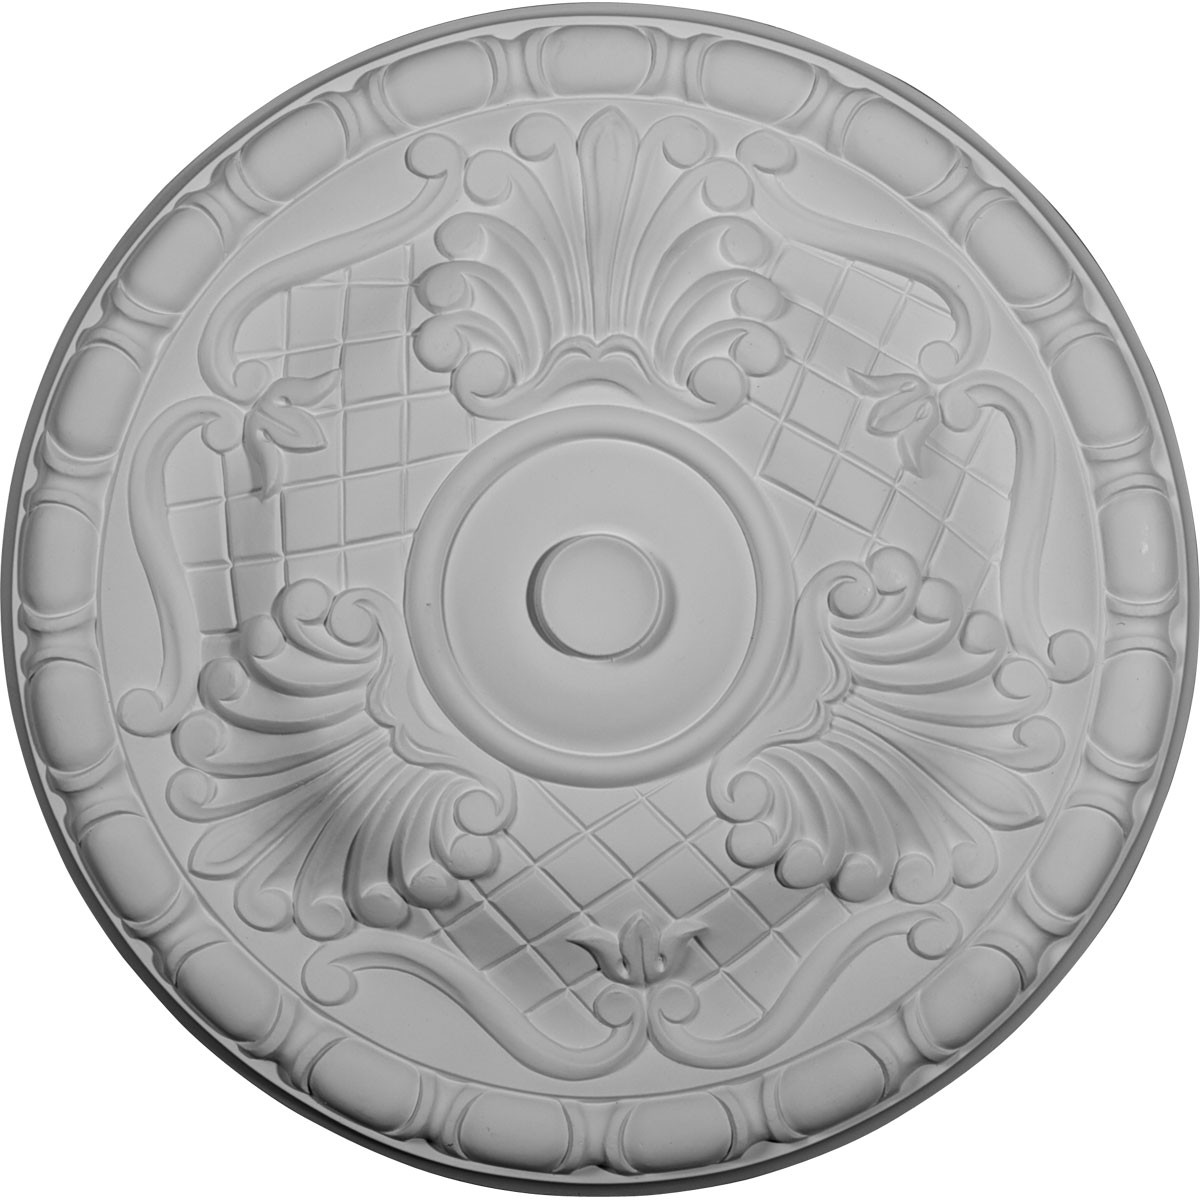 """EM-CM16AM - 15 3/4""""OD x 5/8""""P Amelia Ceiling Medallion (Fits Canopies up to 4 1/8"""")"""